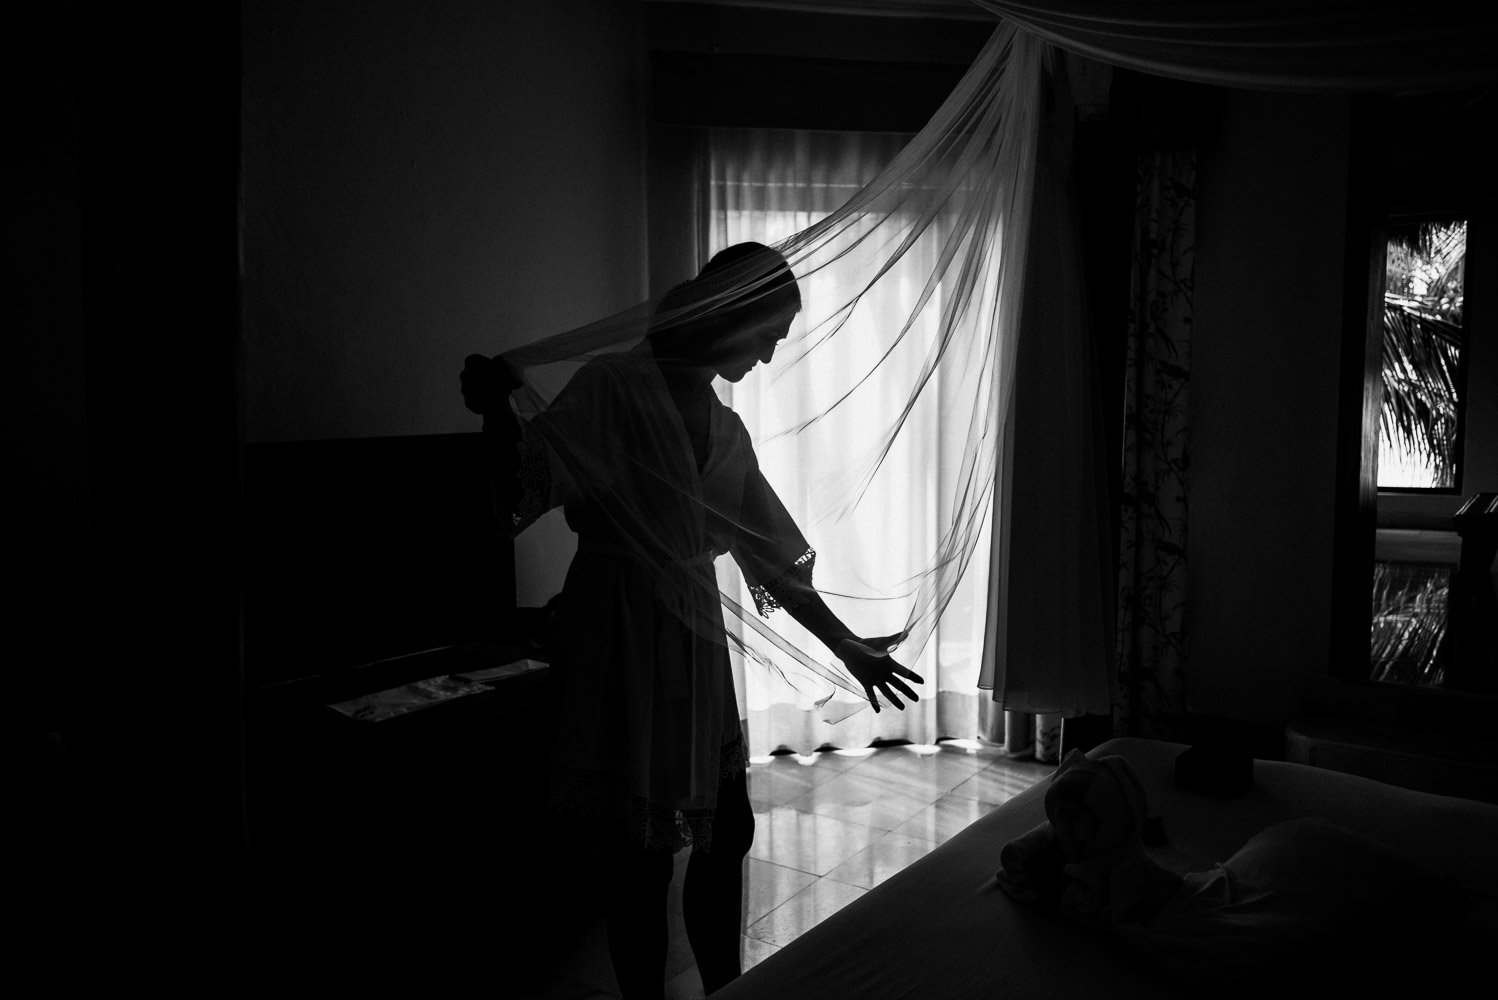 Bride with her gown, black and white silhouette